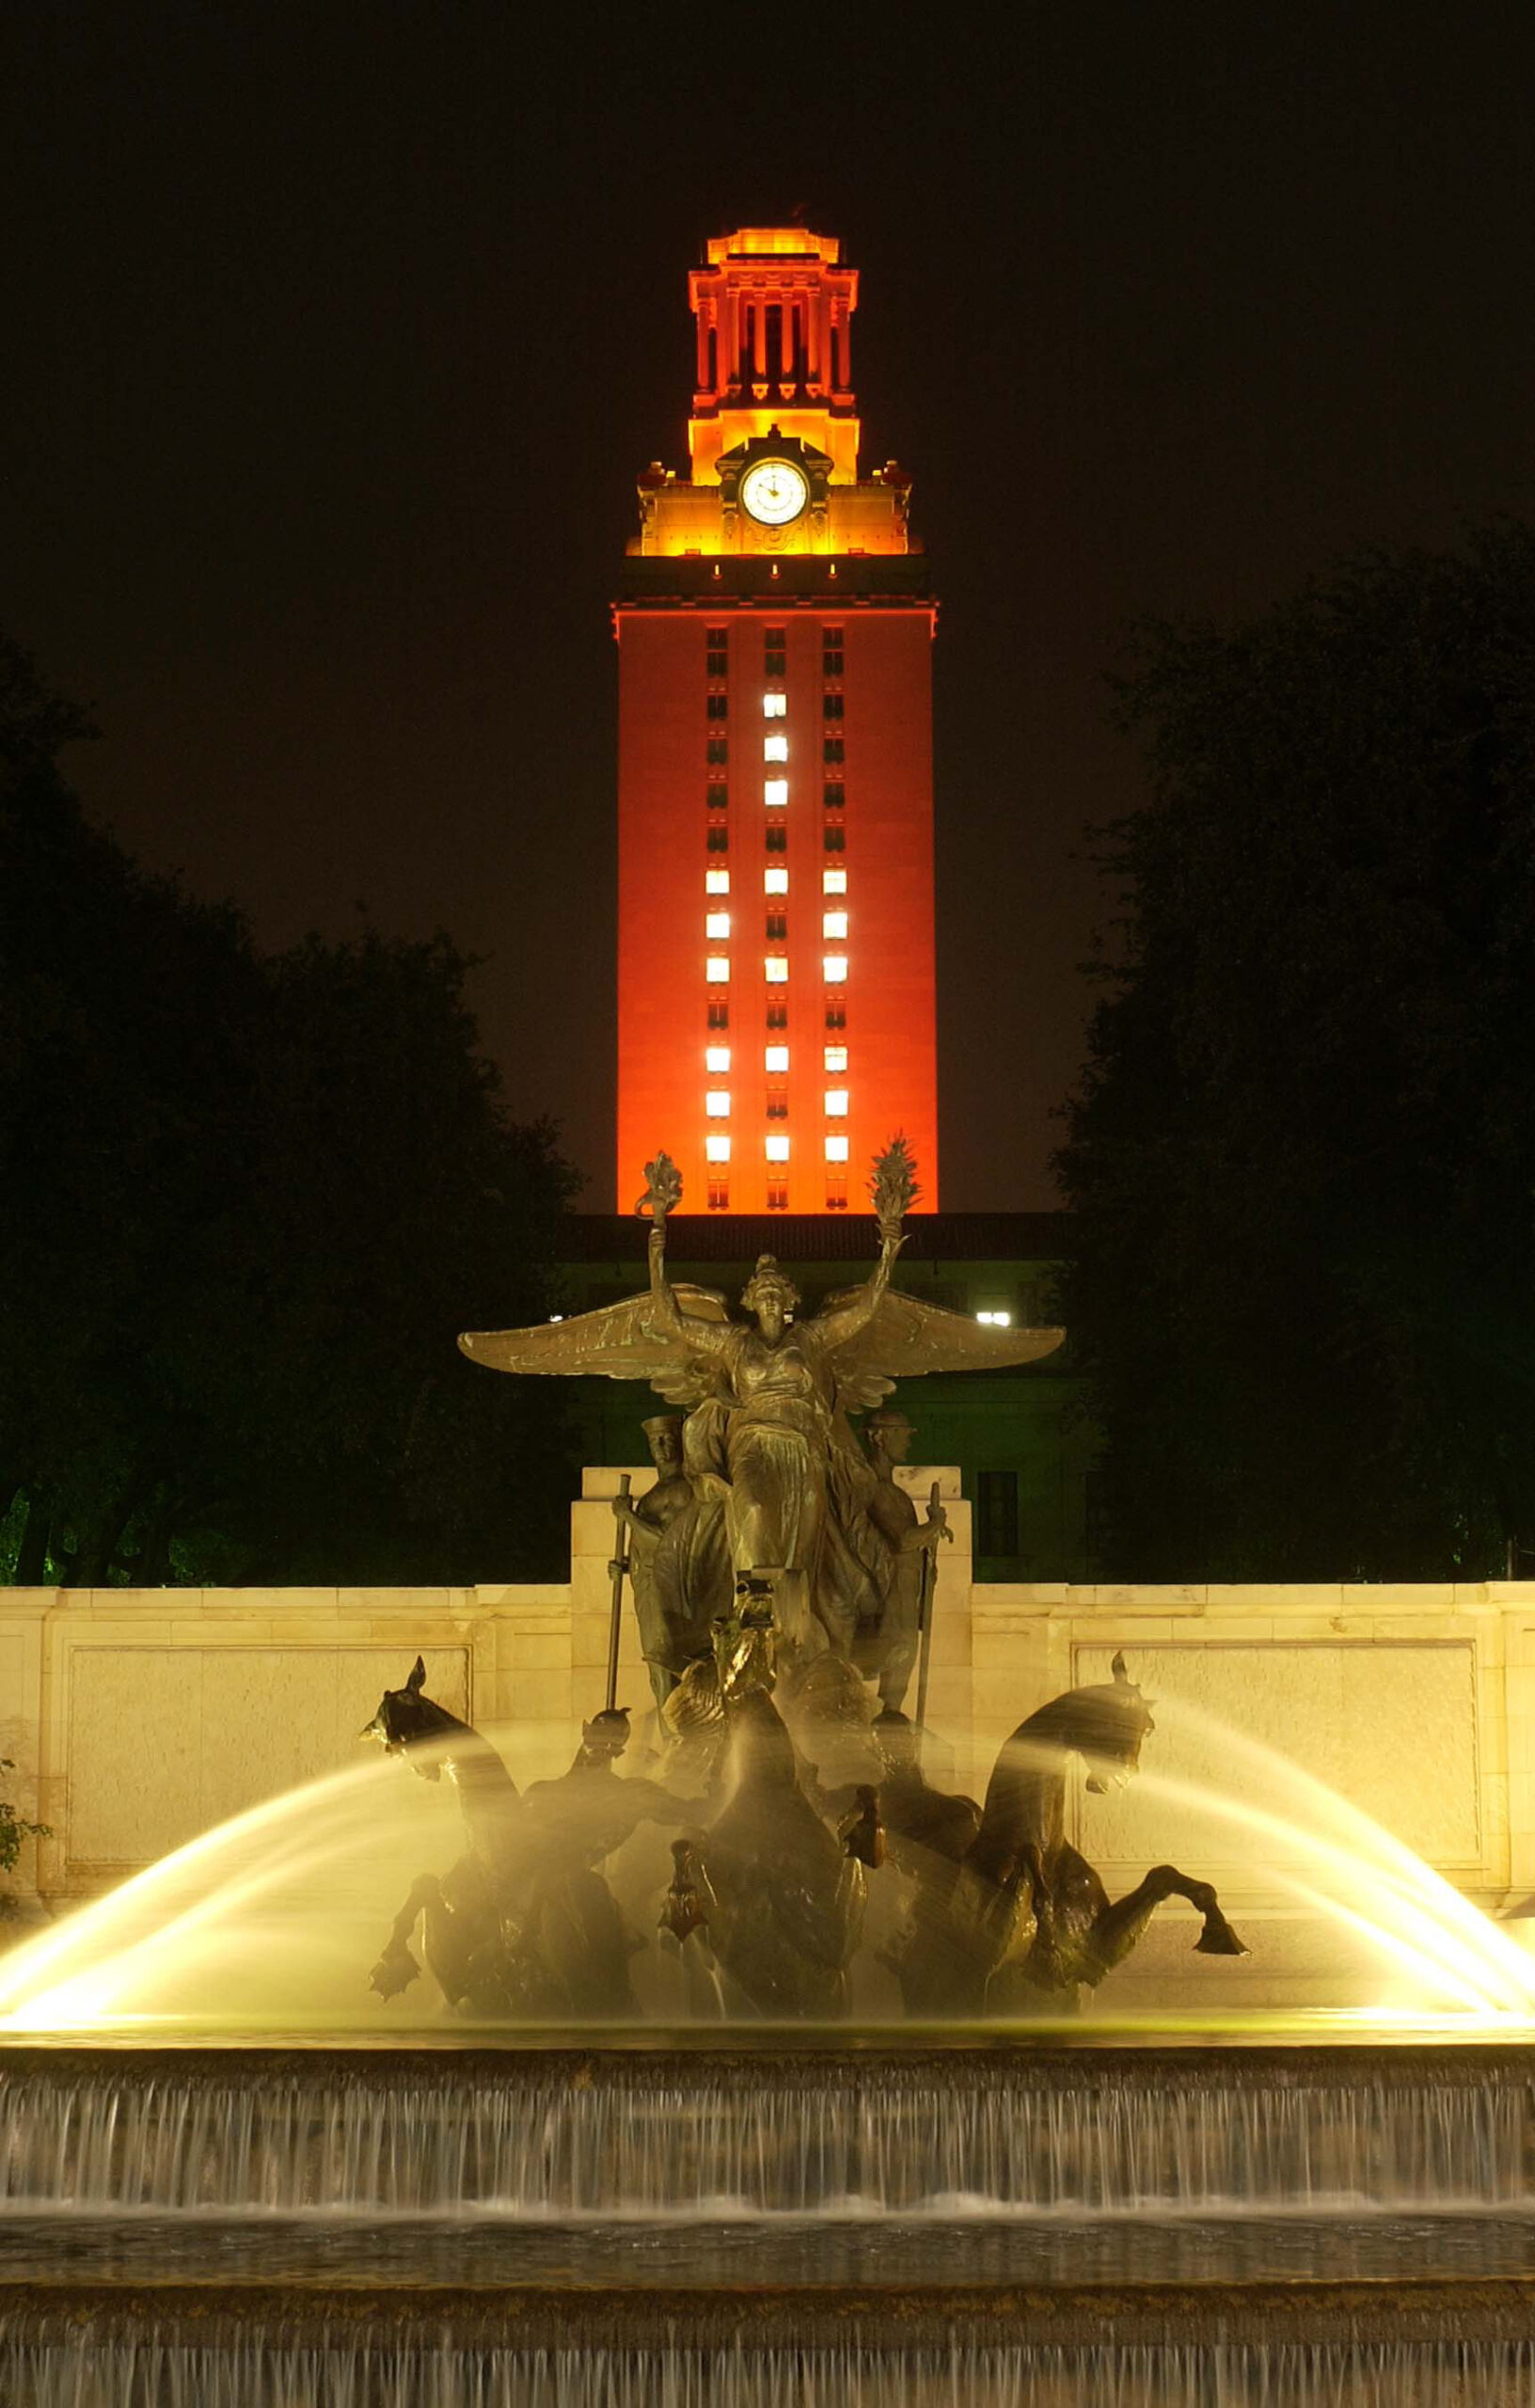 Tower at night with 100 on side